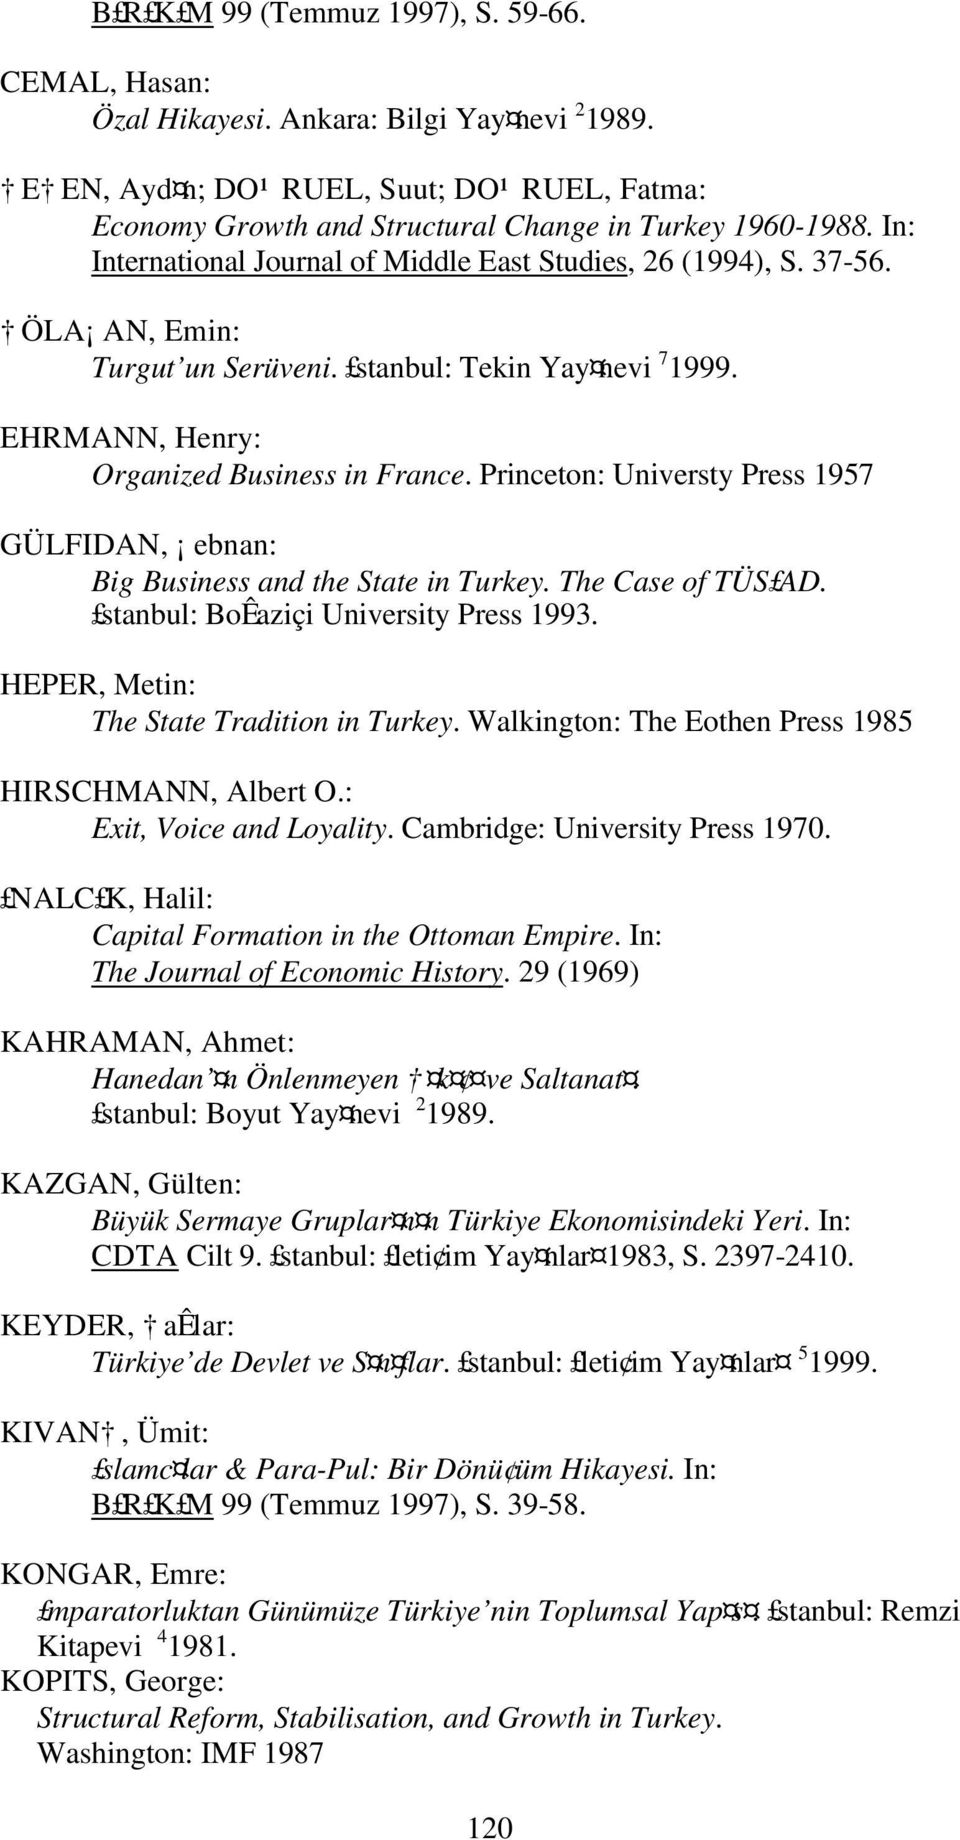 Princeton: Universty Press 1957 GÜLFIDAN, ebnan: Big Business and the State in Turkey. The Case of TÜS AD. stanbul: BoÊaziçi University Press 1993. HEPER, Metin: The State Tradition in Turkey.